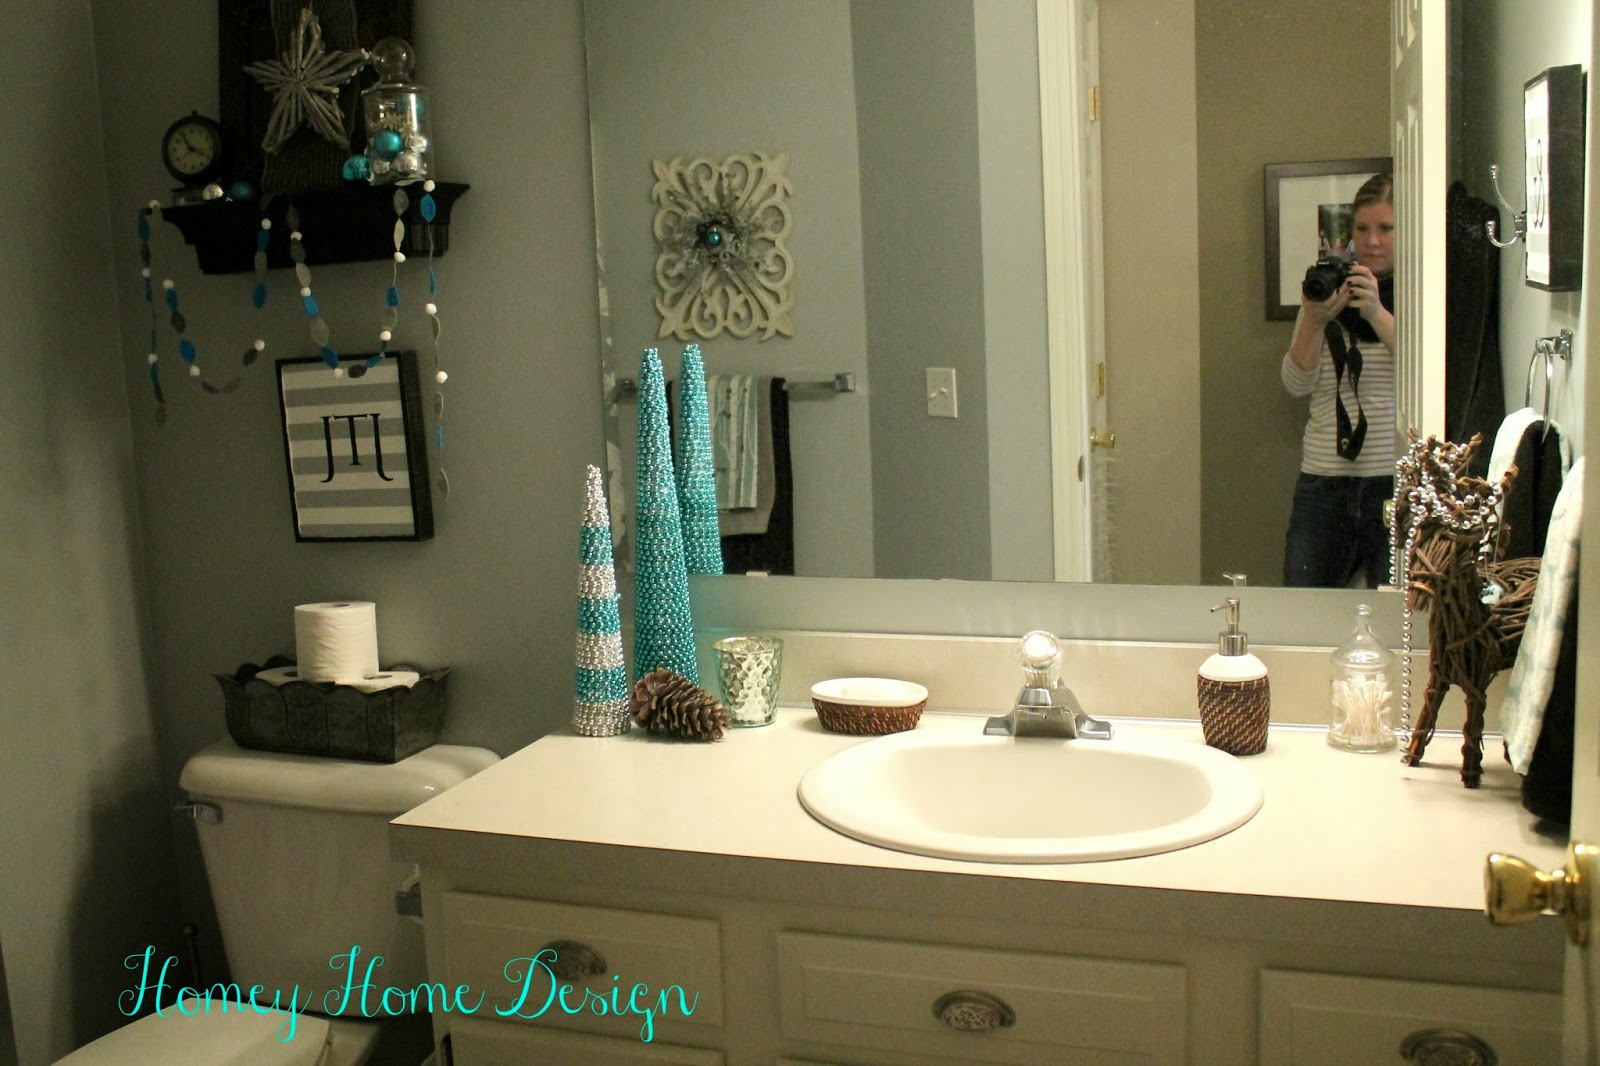 Homey home design bathroom christmas ideas for Bathroom decorating themes